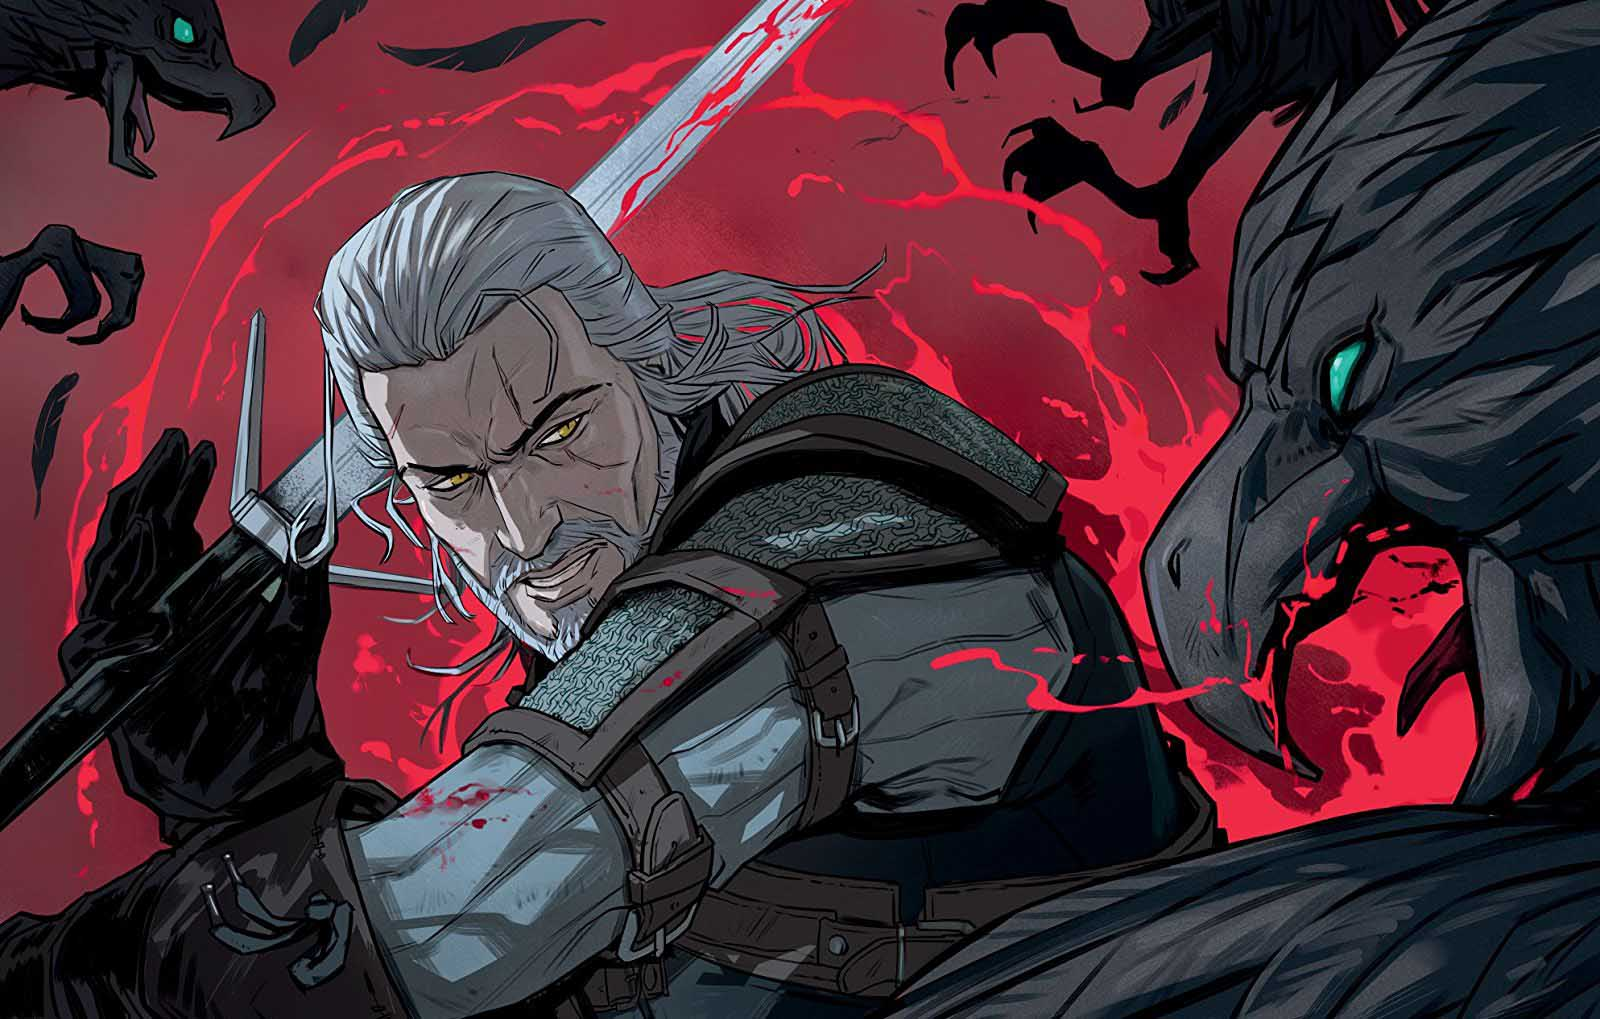 The Witcher tendrá una película anime en Netflix 4